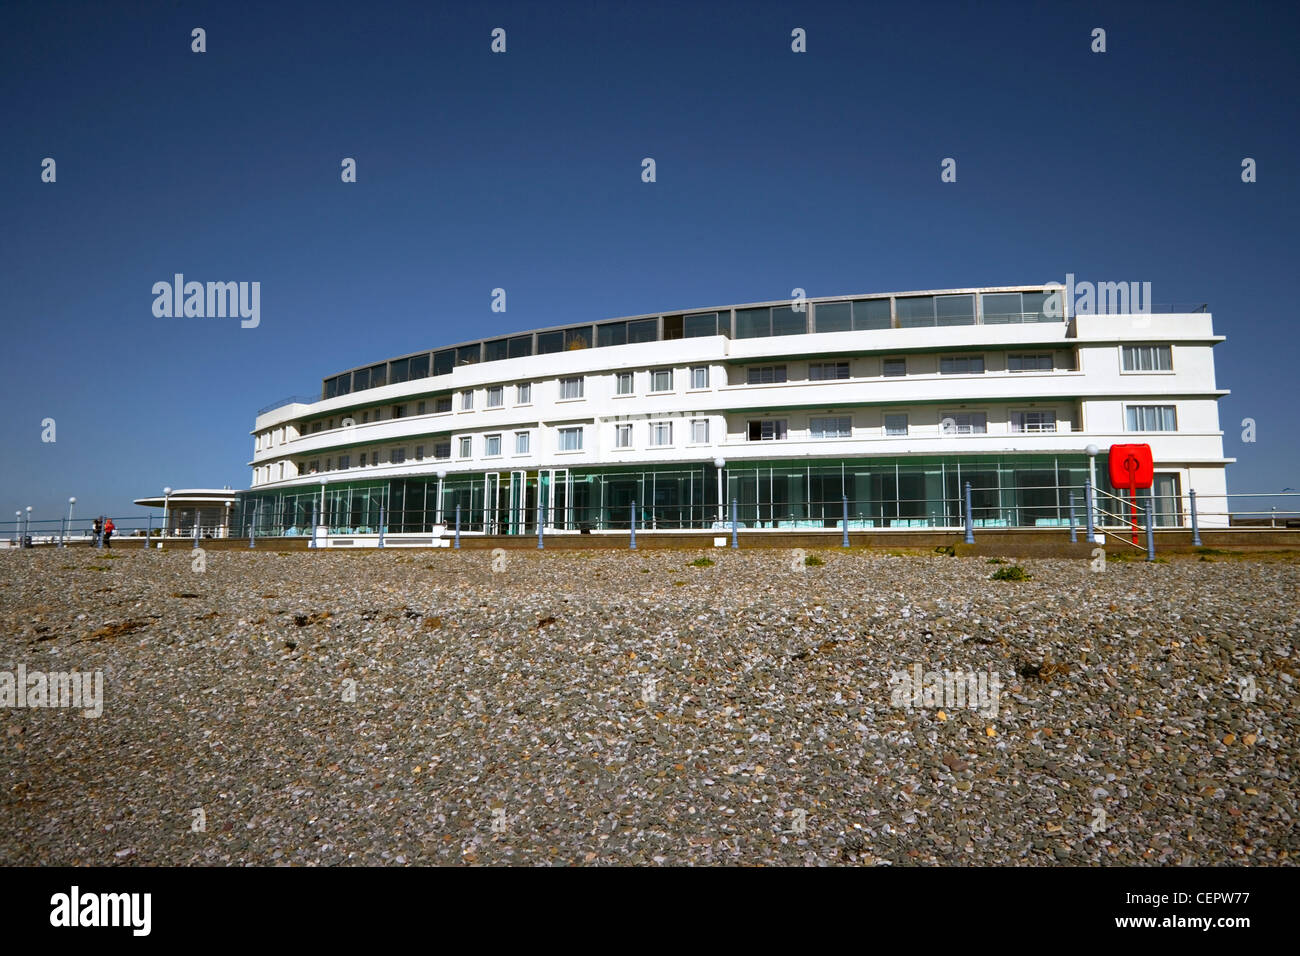 The Midland Hotel, an Art-Deco classic on the seafront in Morecambe Bay. - Stock Image